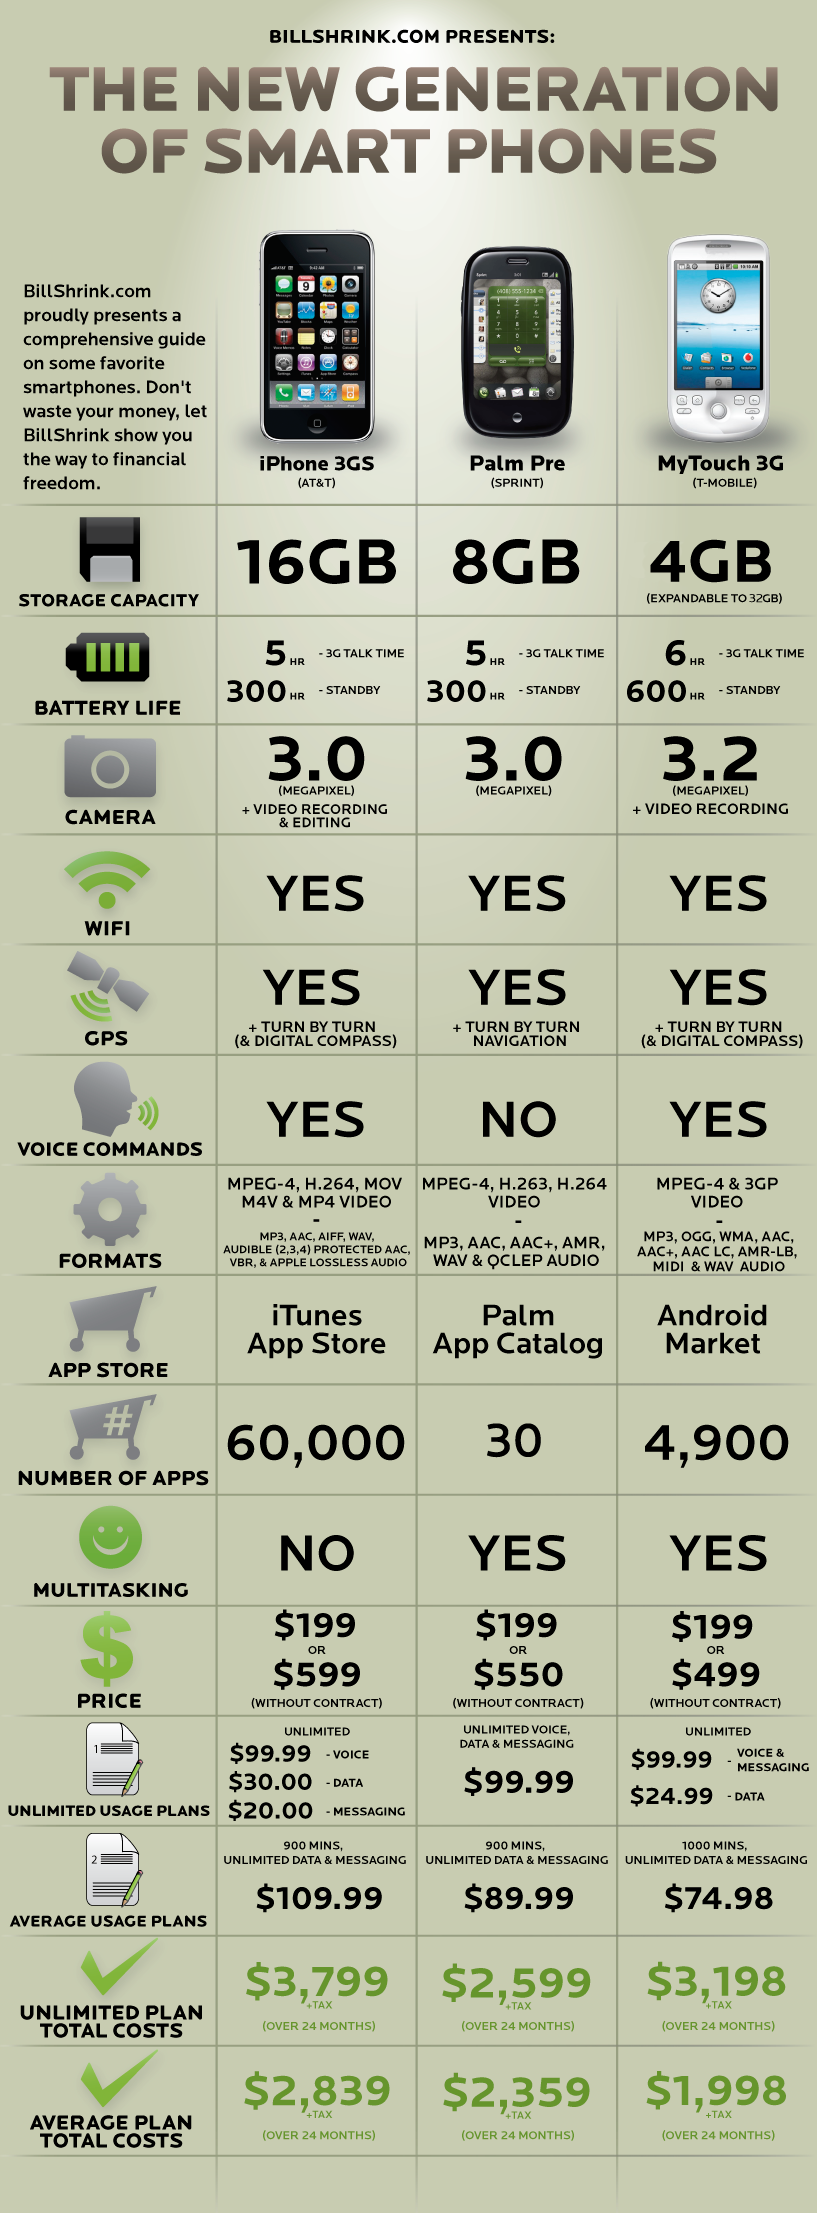 myTouch 3g vs iPhone 3GS vs Palm Pre